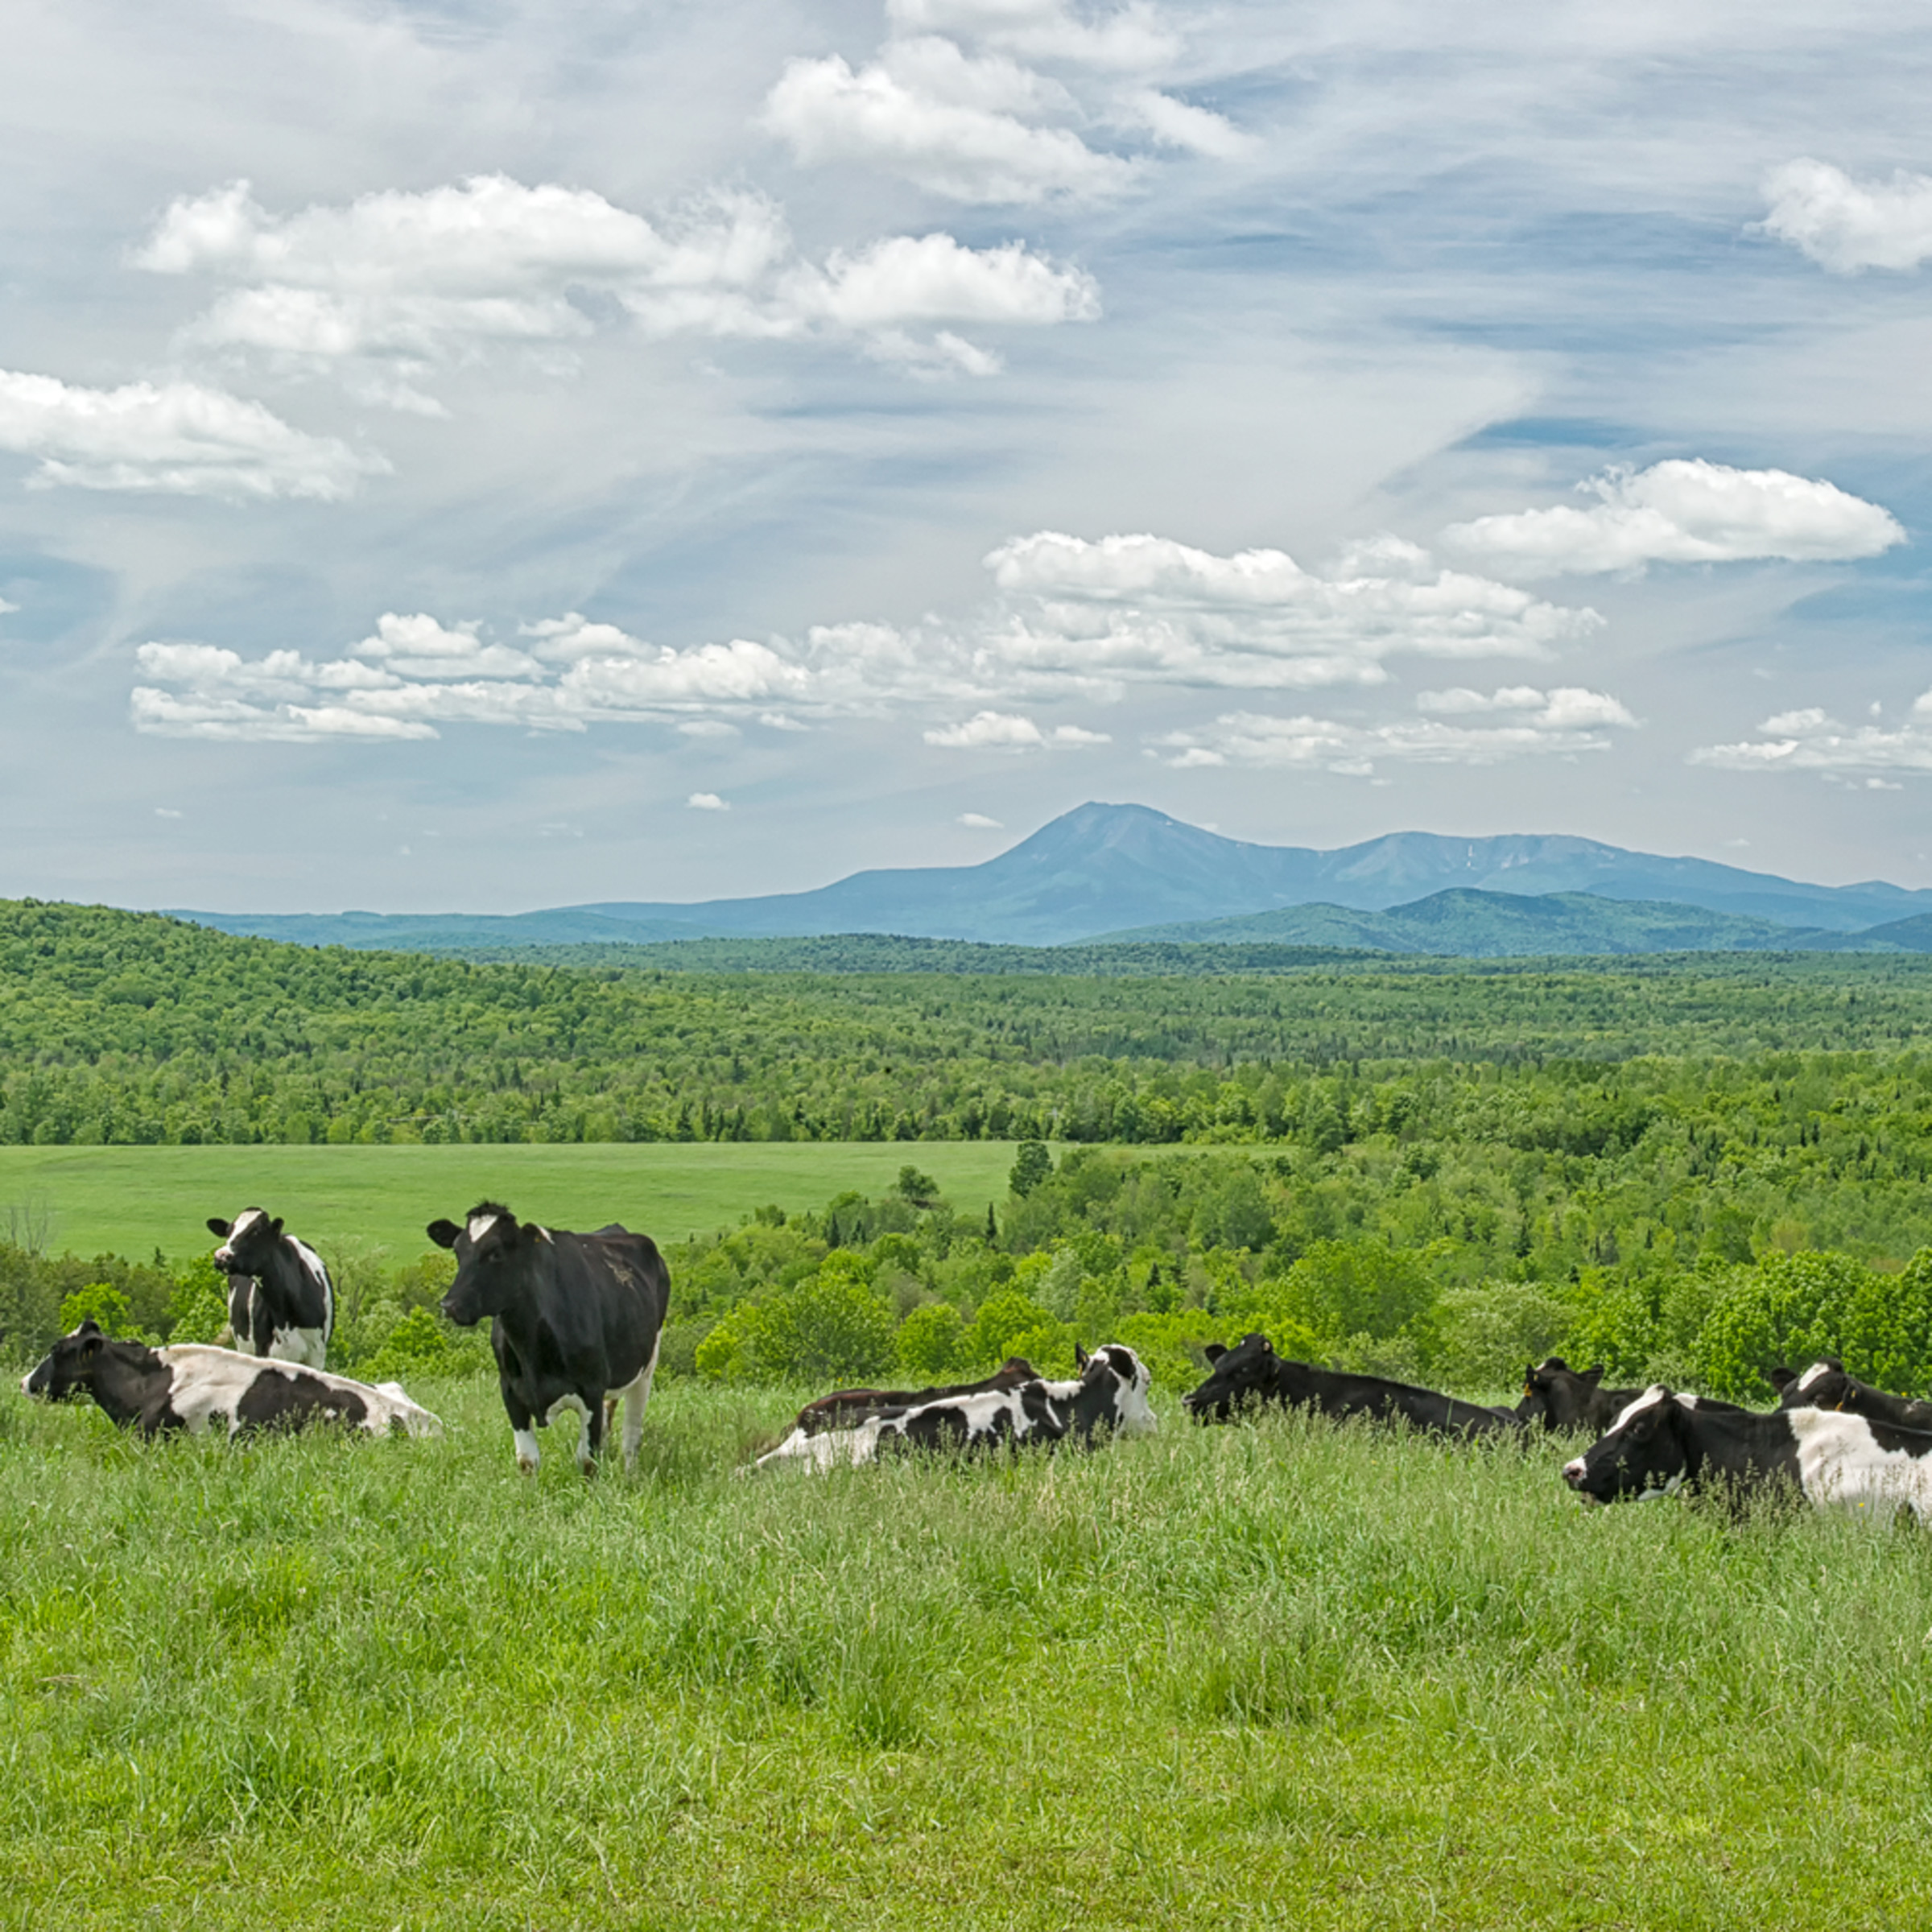 Cows and mt katahdin pnbpzb